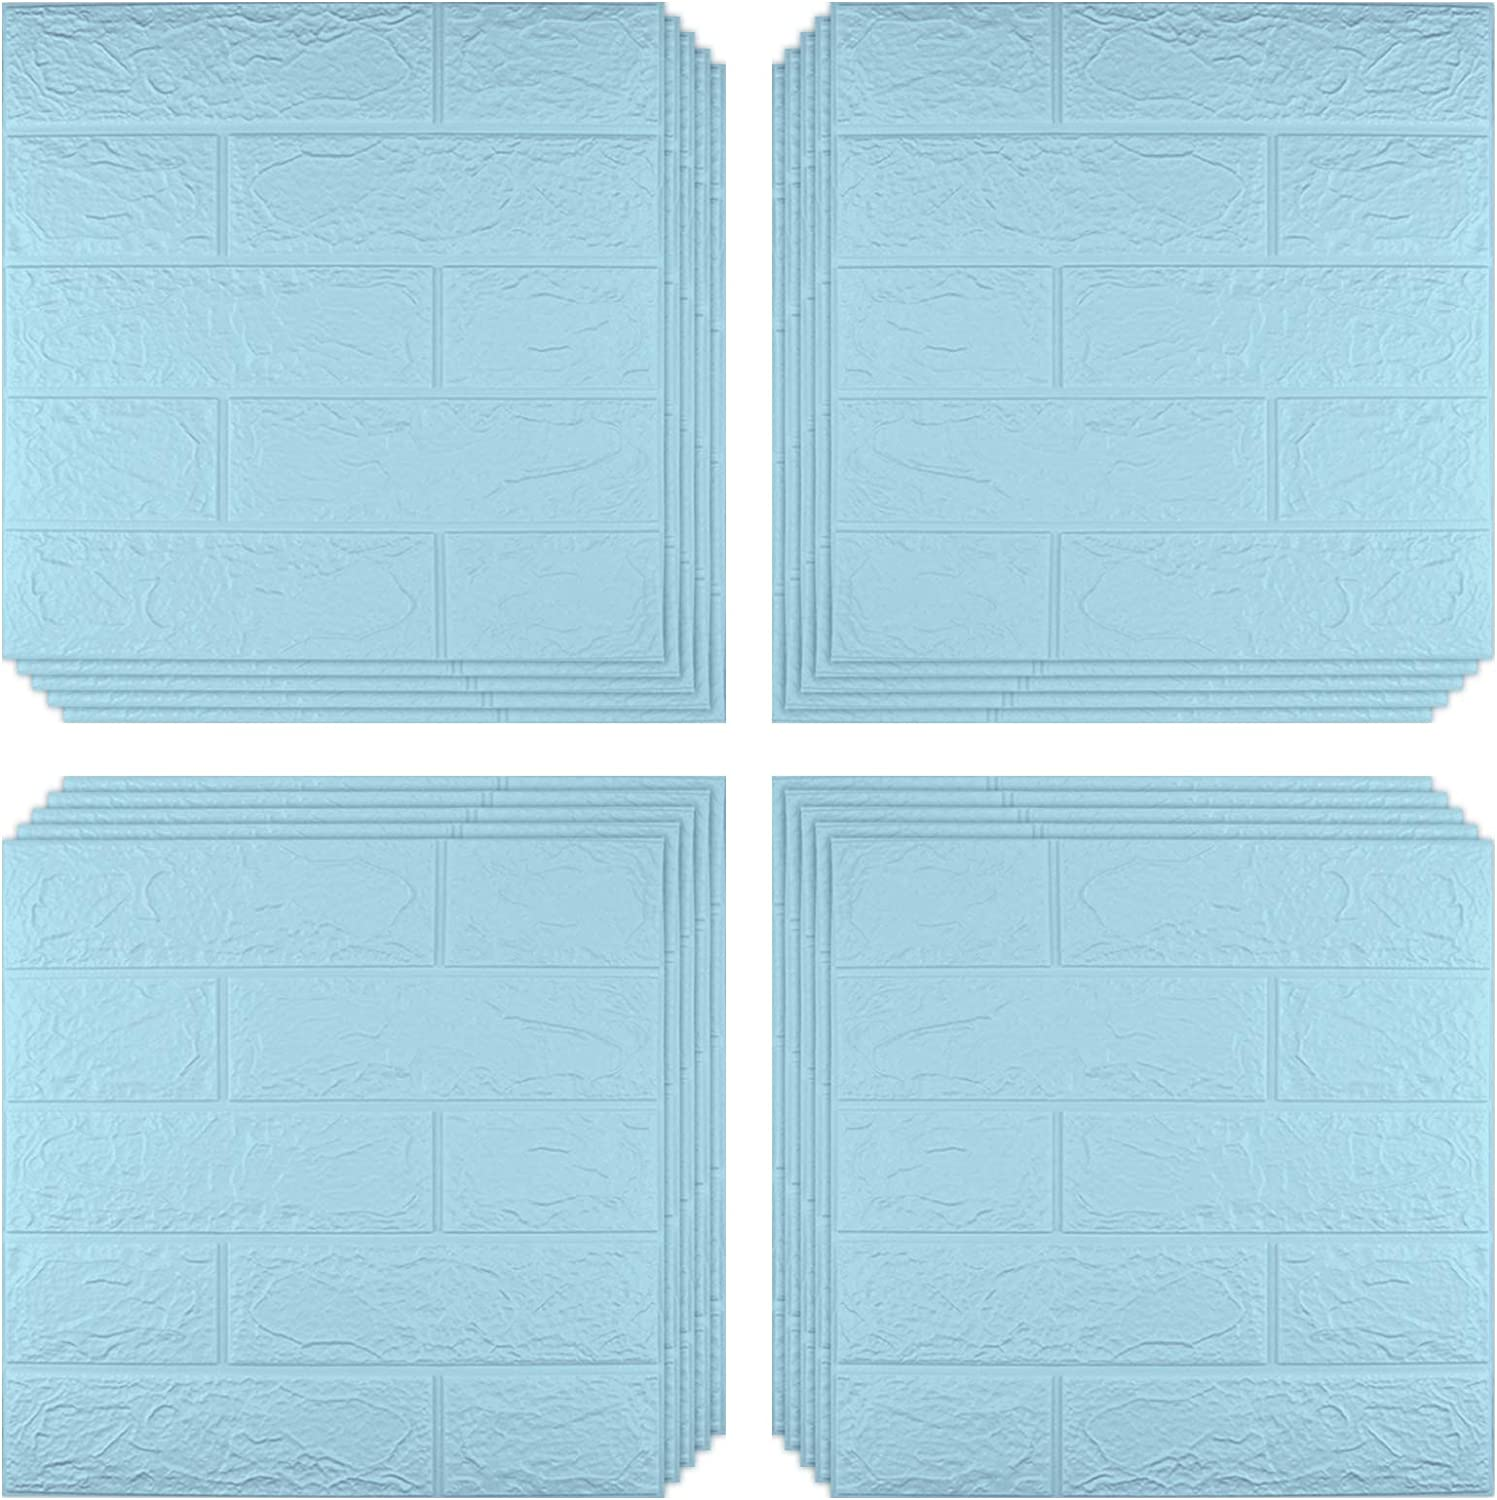 Sodeno White 3D Wallpaper, 20 Pack 3D Wall Panels 3D Brick Self-Adhesive Waterproof PE Foam Wallpaper for Interior Wall Tile Decor, TV Wall,Bathroom, Living Room Home Decoration-Blue